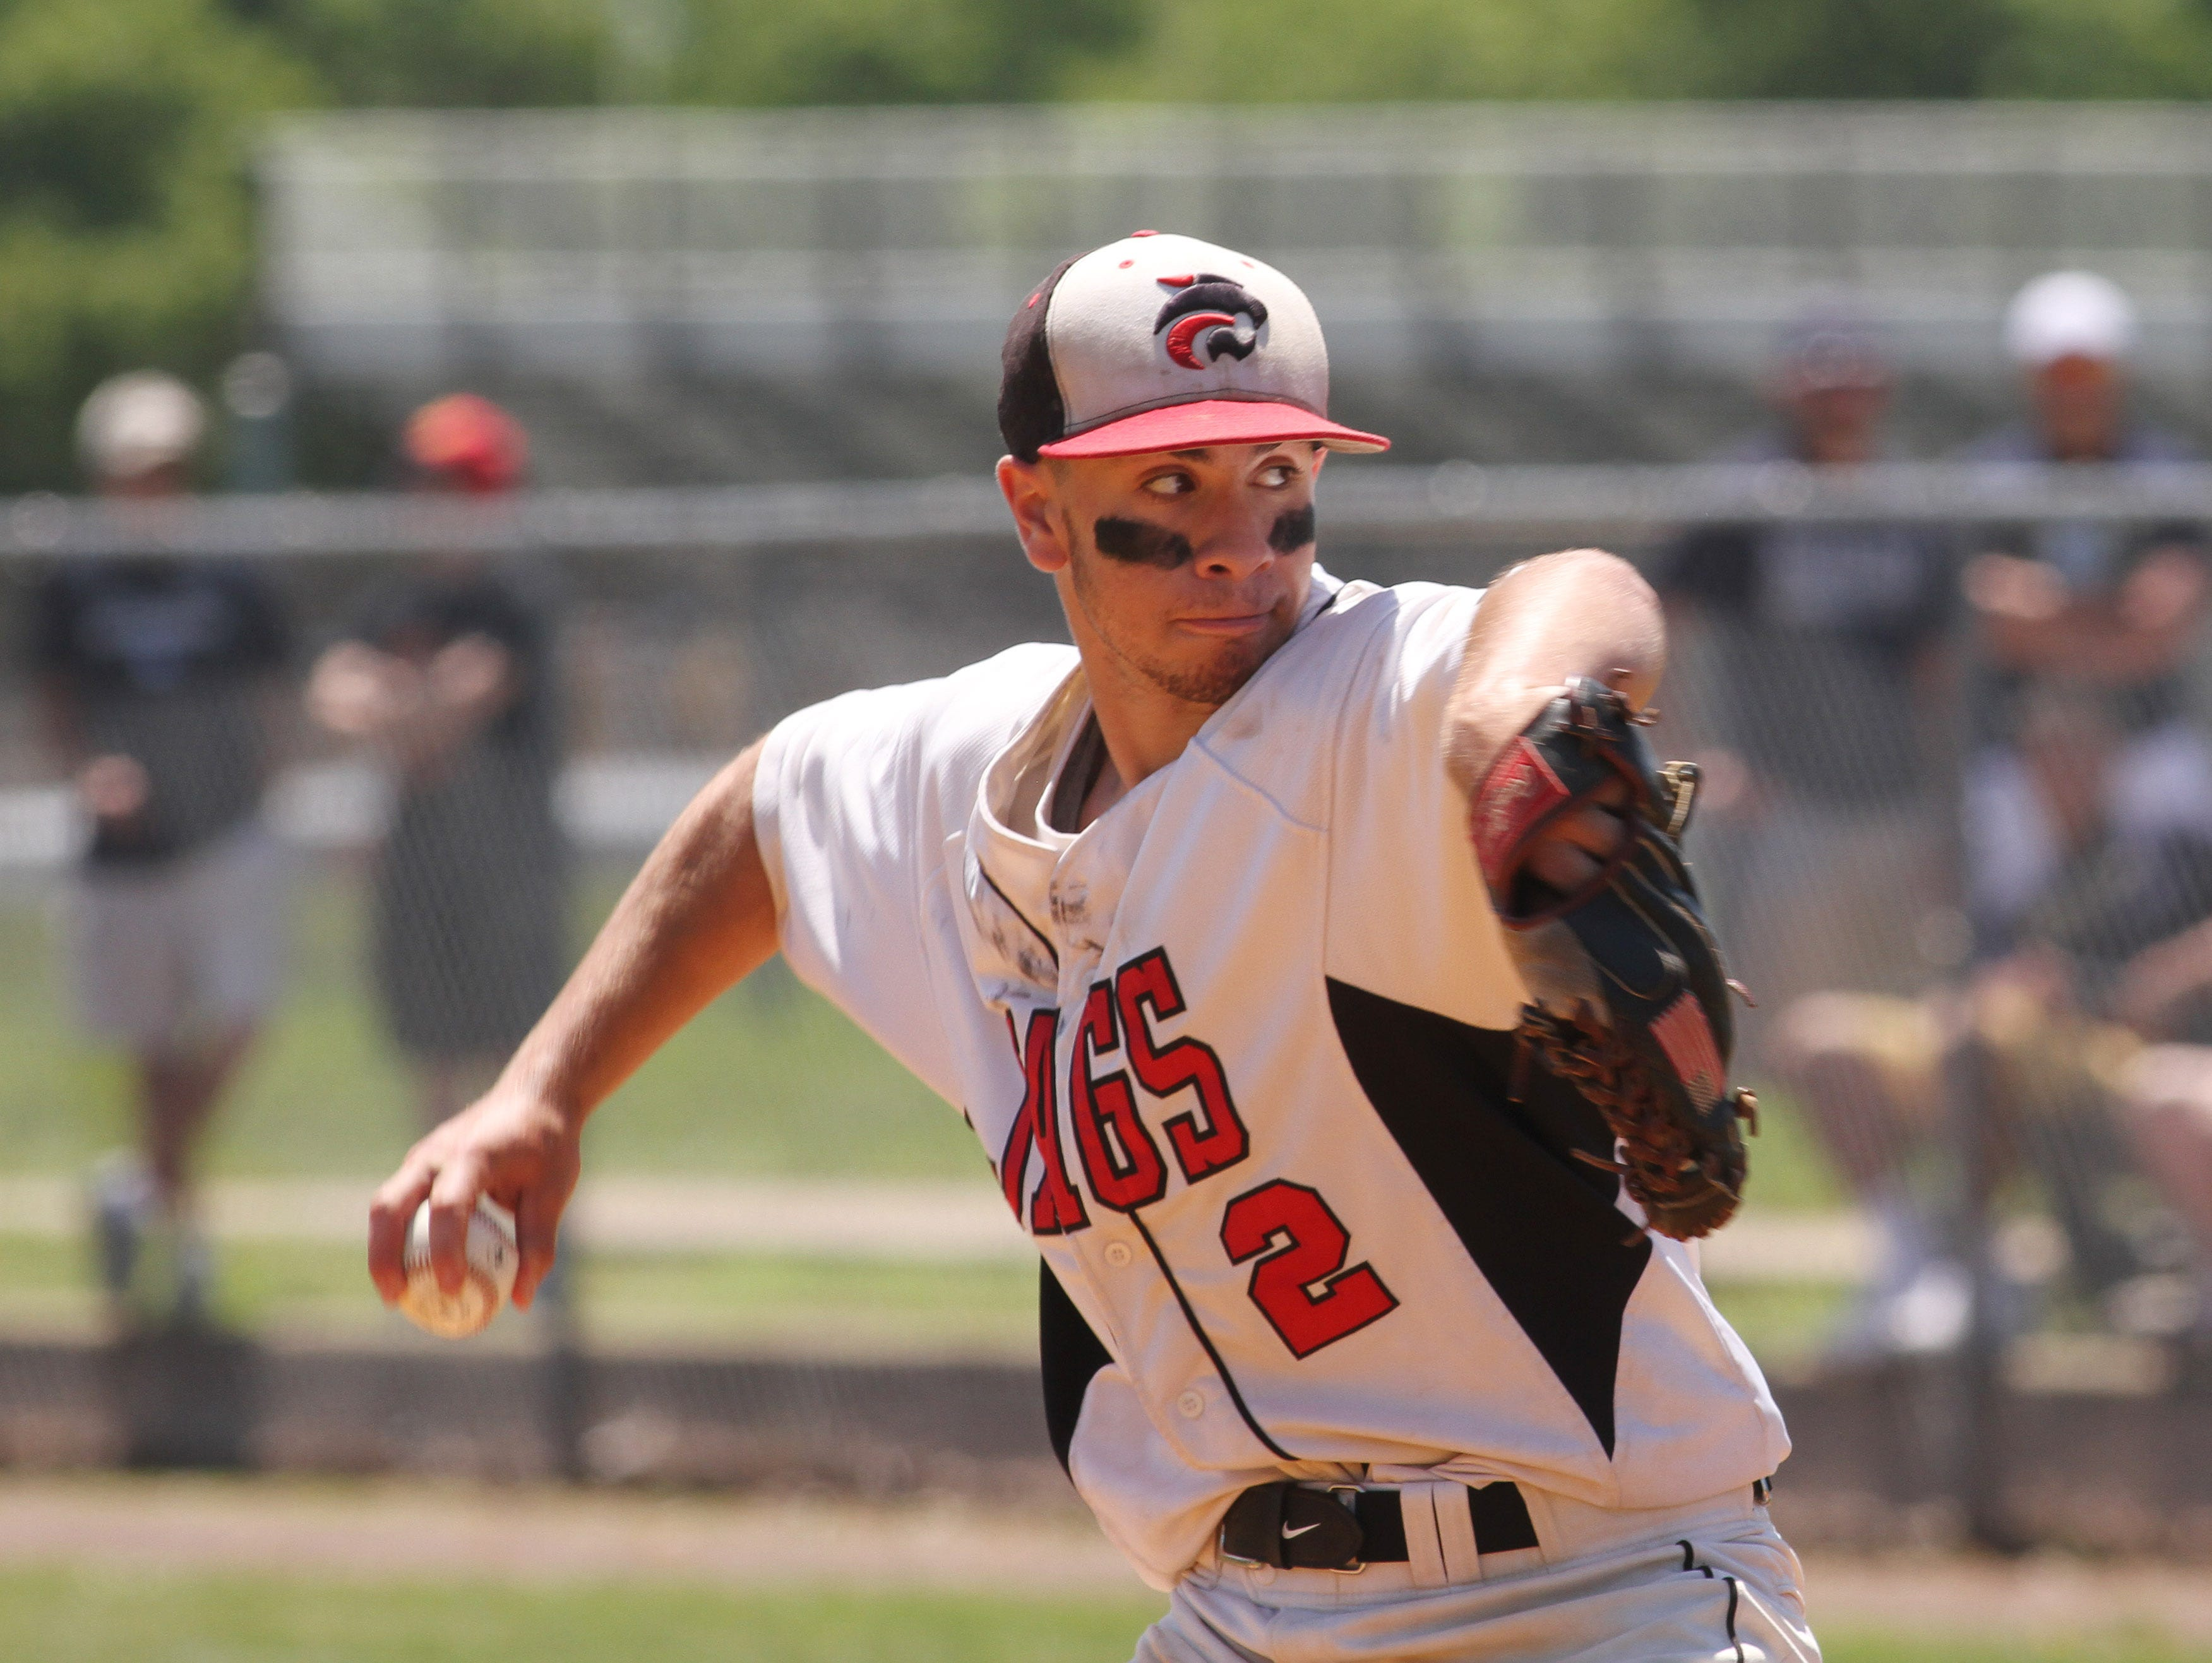 Brandon Janofsky of Jackson Memorial has committed to play at Stony Brook.